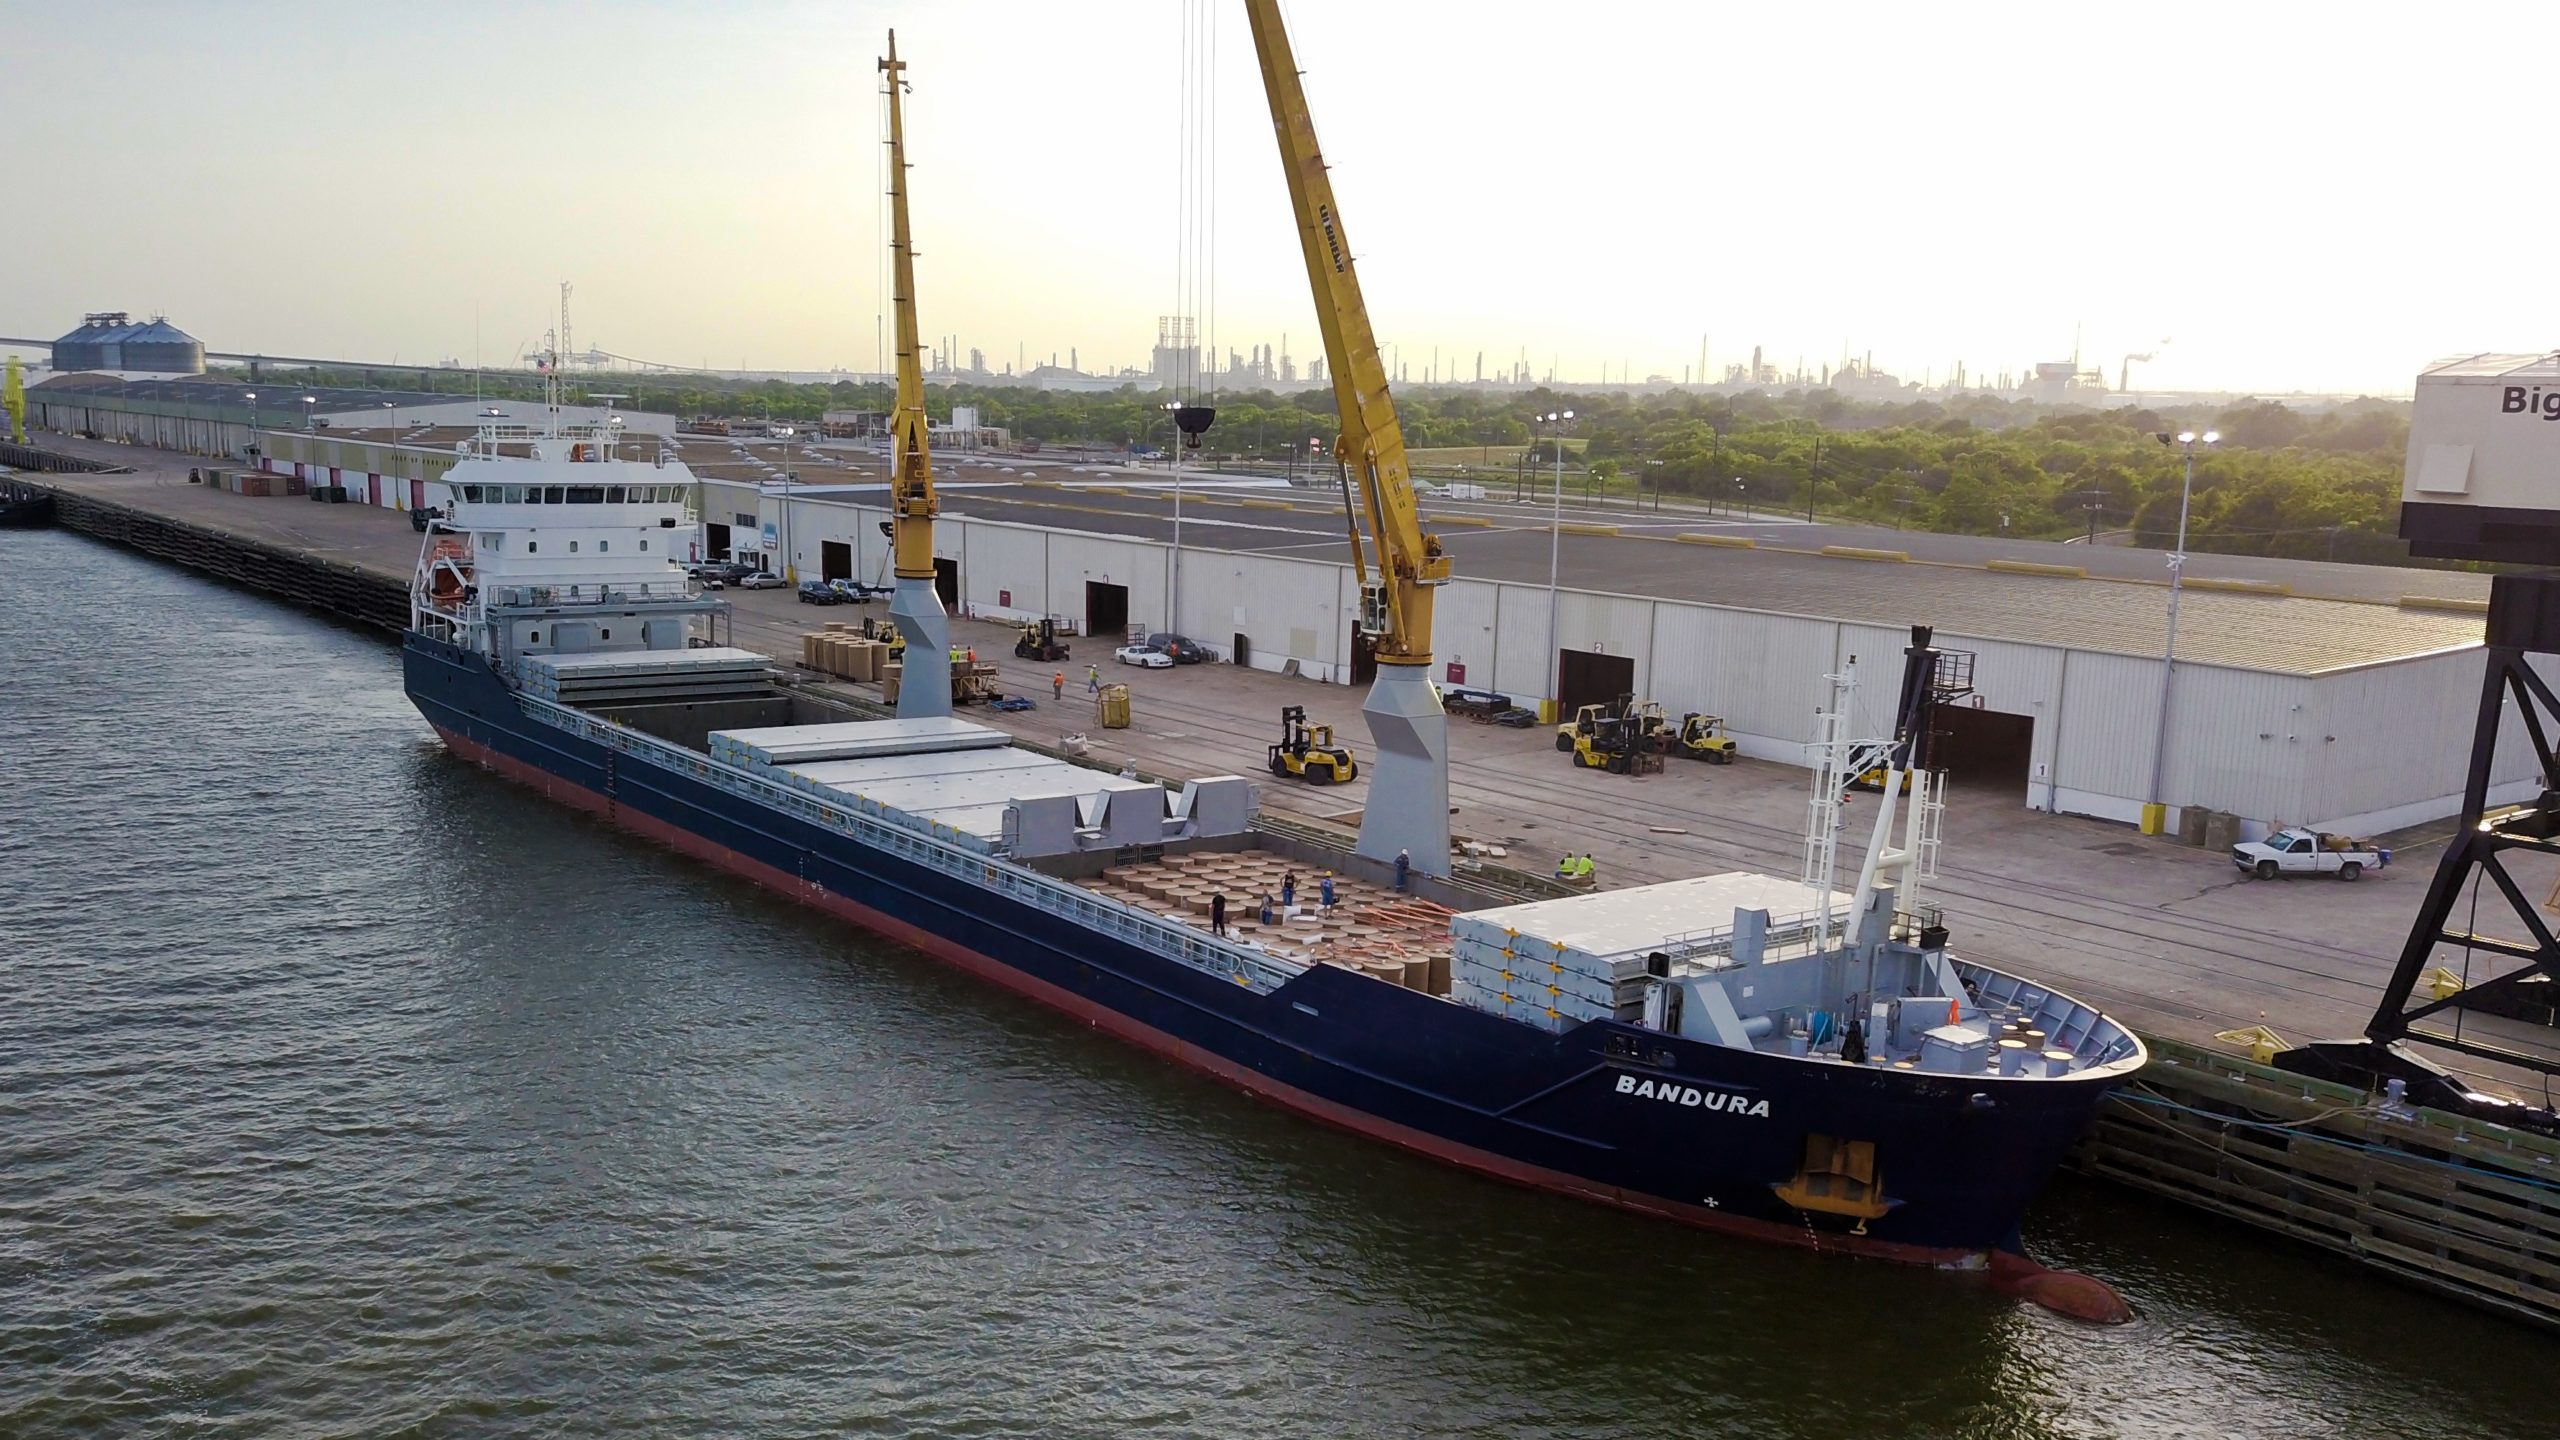 Vessel bandura from Noordwijk Ocean services